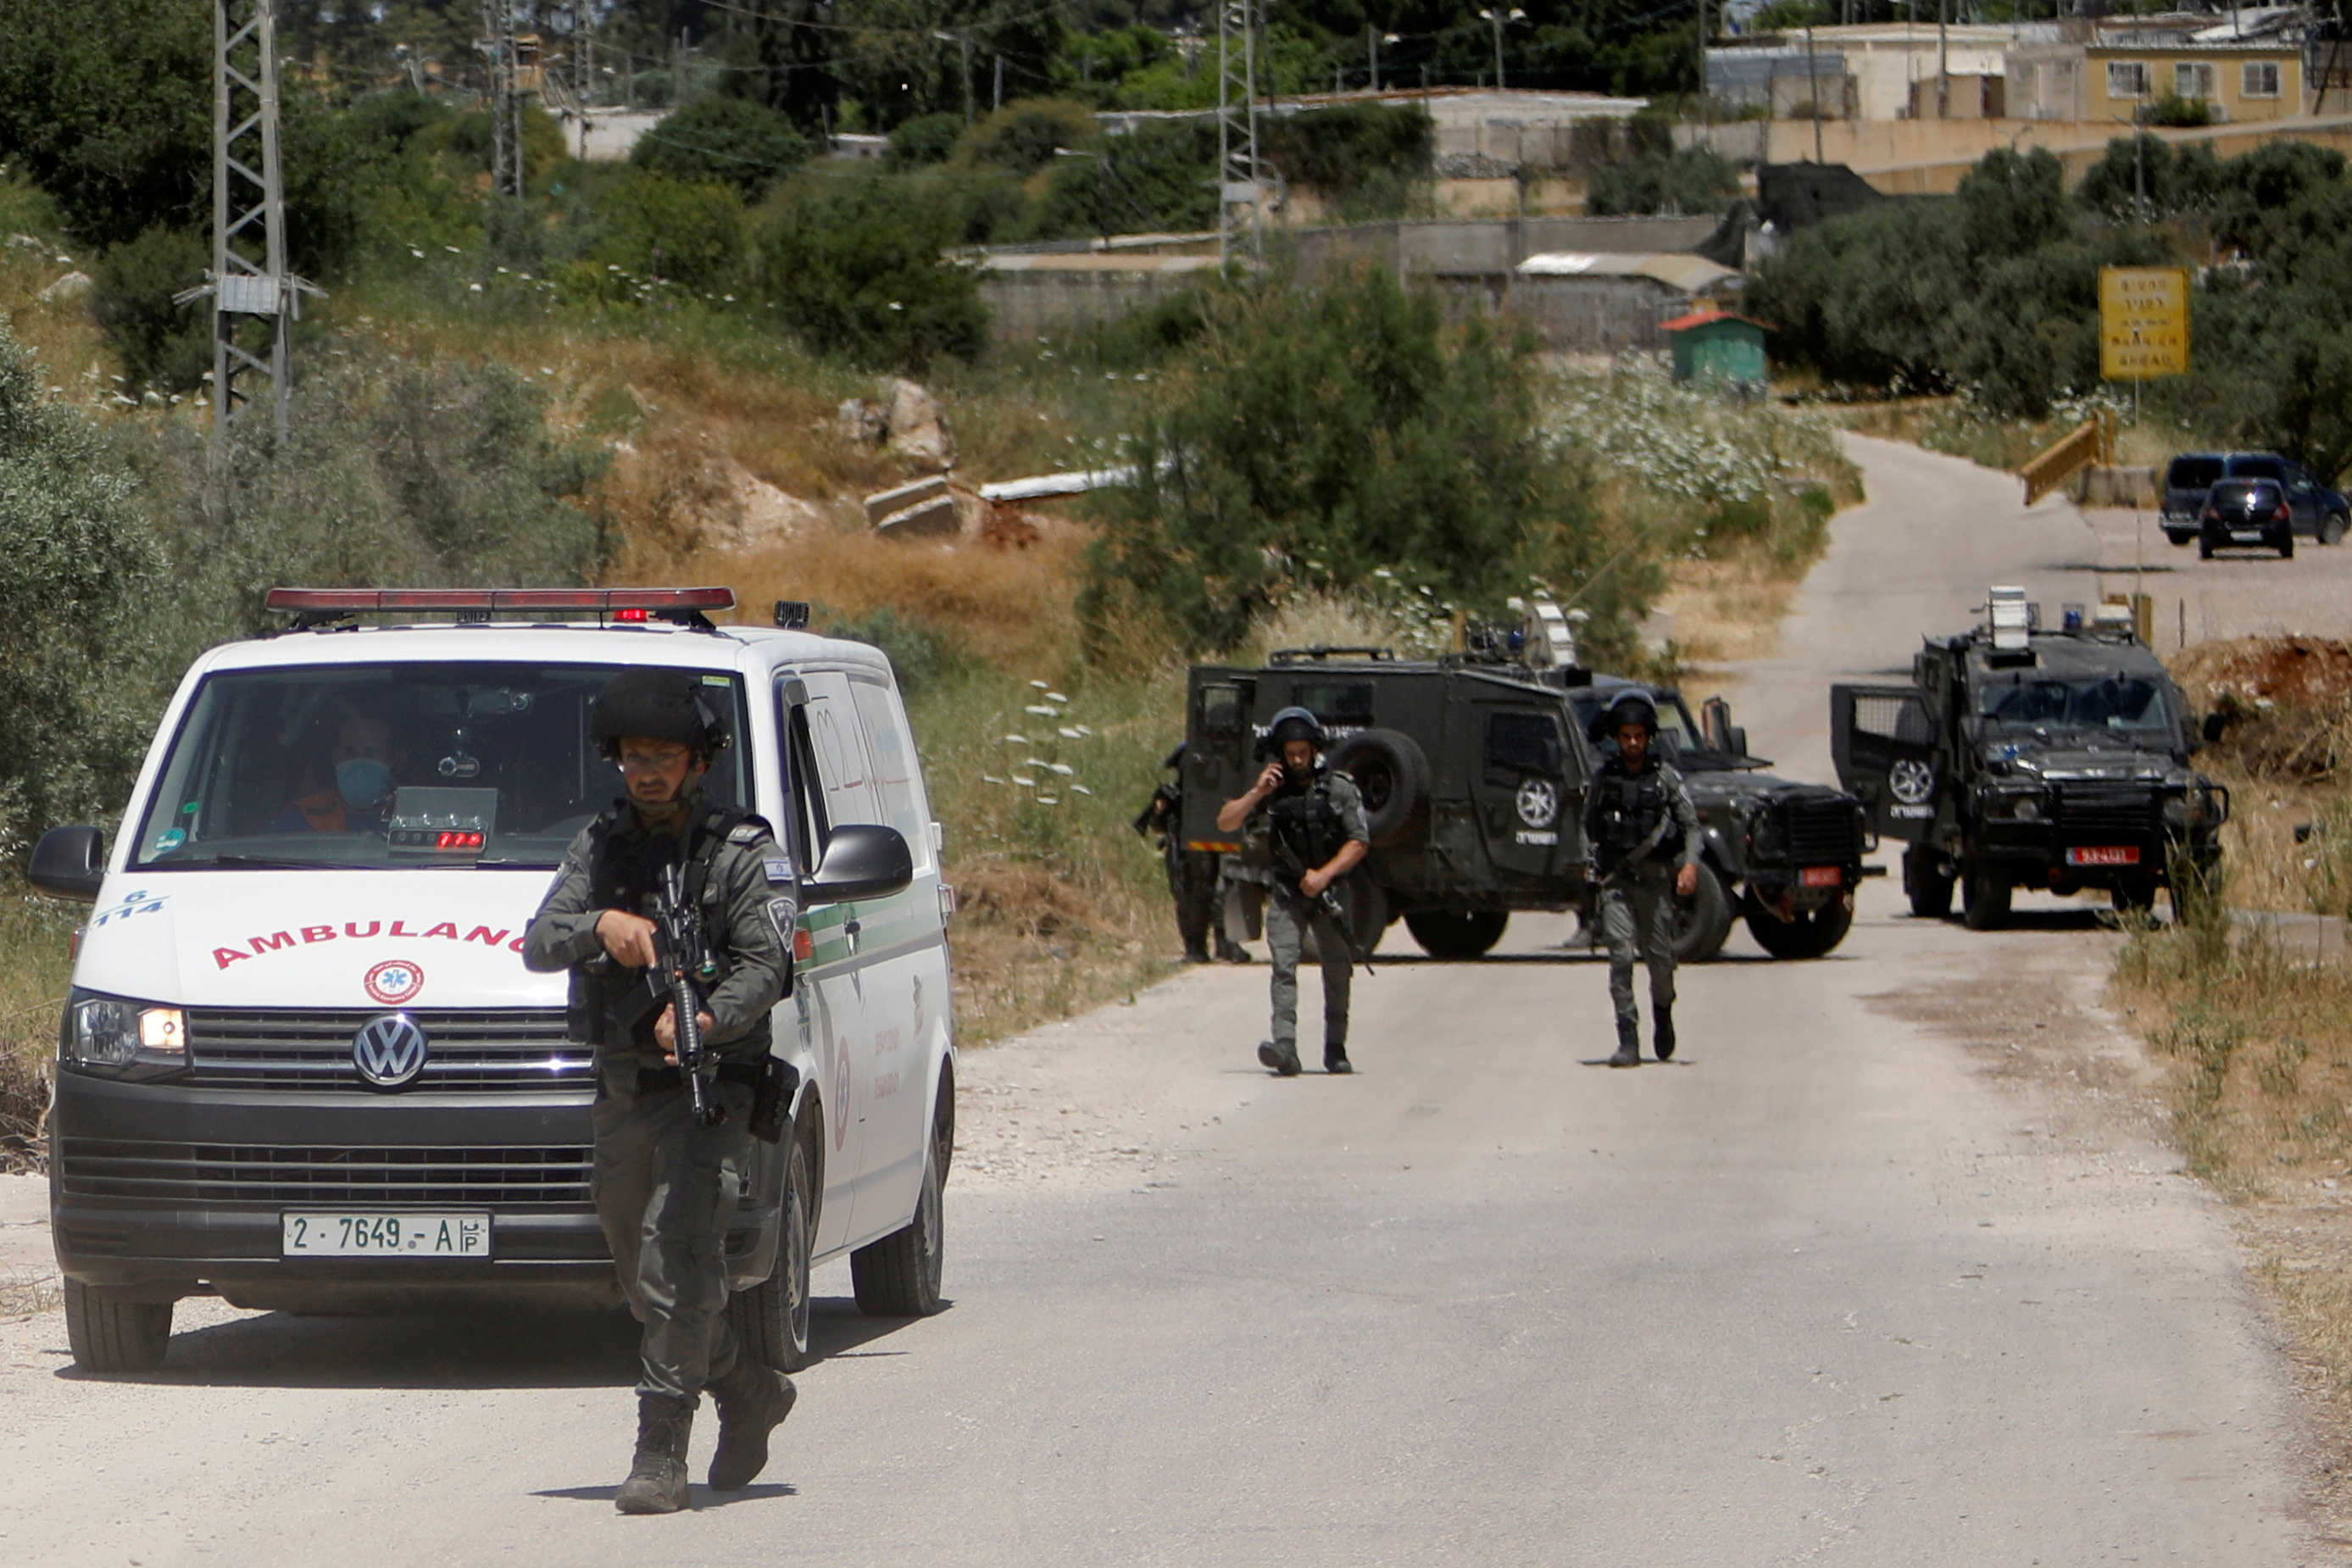 Members of Israeli border police patrol near the scene of a security incident at an Israeli military base near Jenin in the Israeli-occupied West Bank, May 7, 2021. REUTERS/Raneen Sawafta